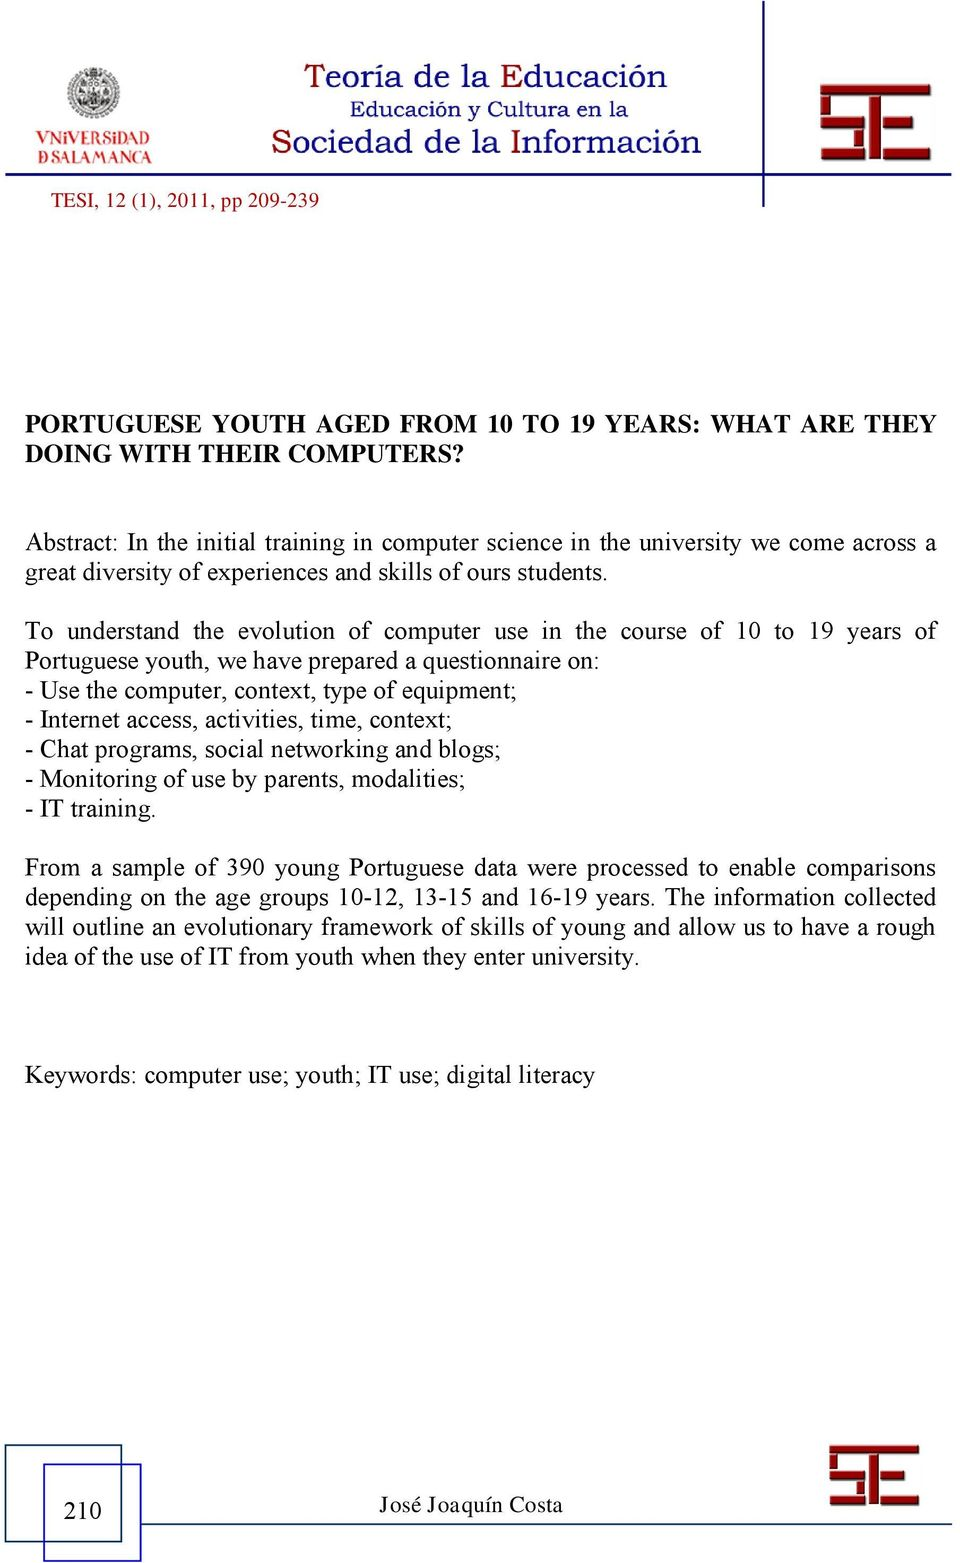 To understand the evolution of computer use in the course of 10 to 19 years of Portuguese youth, we have prepared a questionnaire on: - Use the computer, context, type of equipment; - Internet